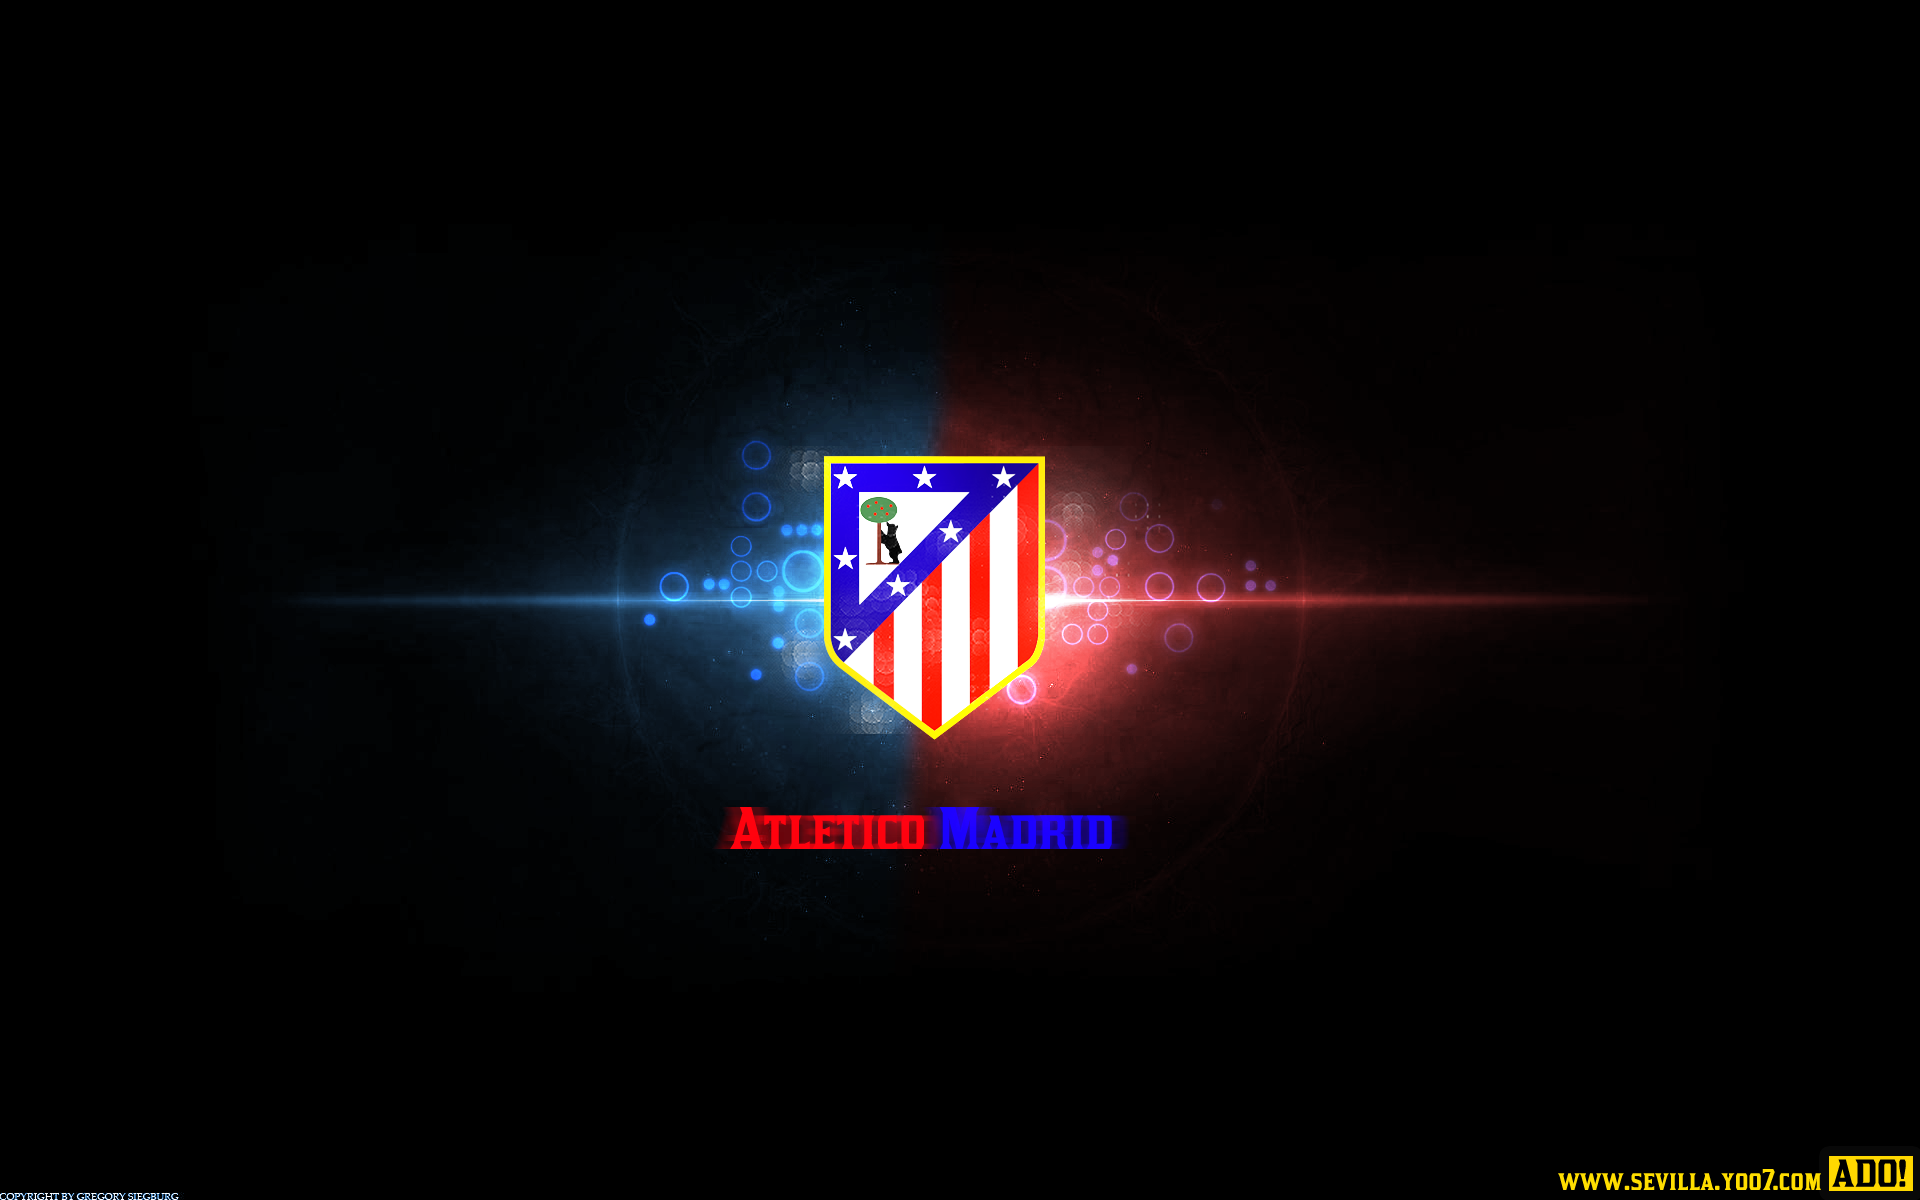 football clubs atletico madrid wallpapers 1549 3 wallpaper id 2161